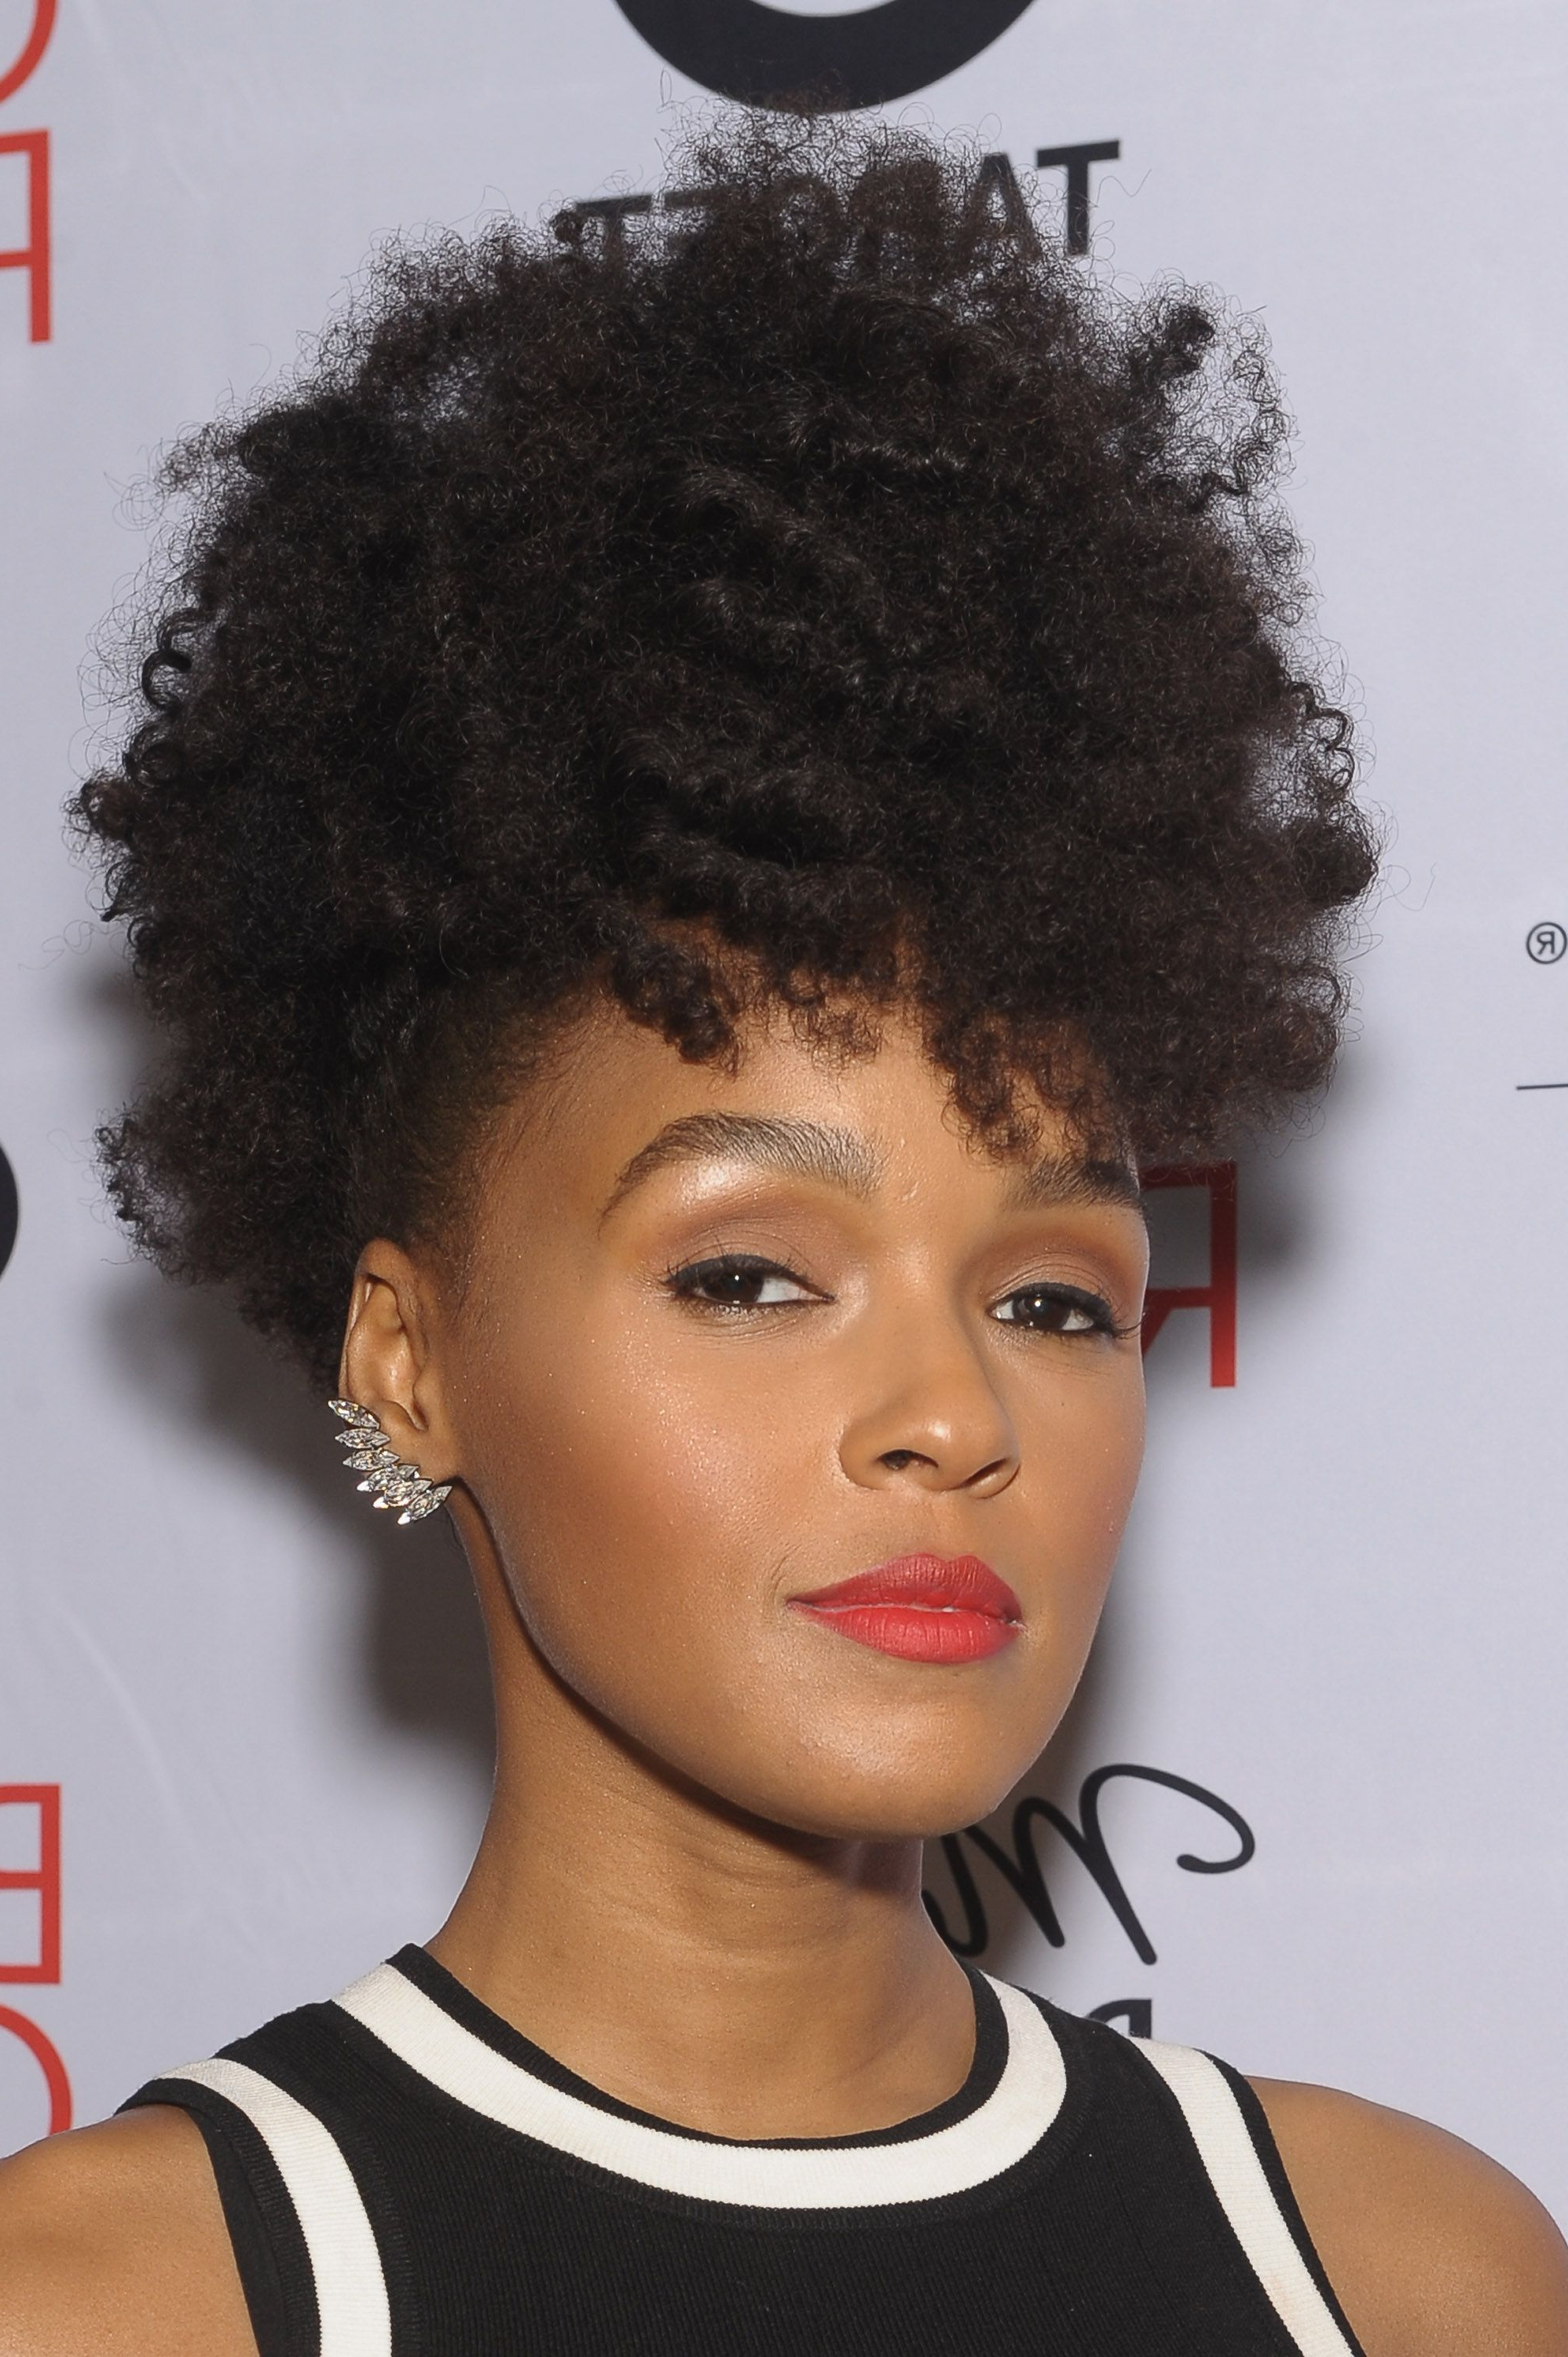 Curly Hairstyles 2019 – 40+ Styles For Every Type Of Curl Inside 2020 Black & Red Curls Mohawk Hairstyles (View 19 of 20)